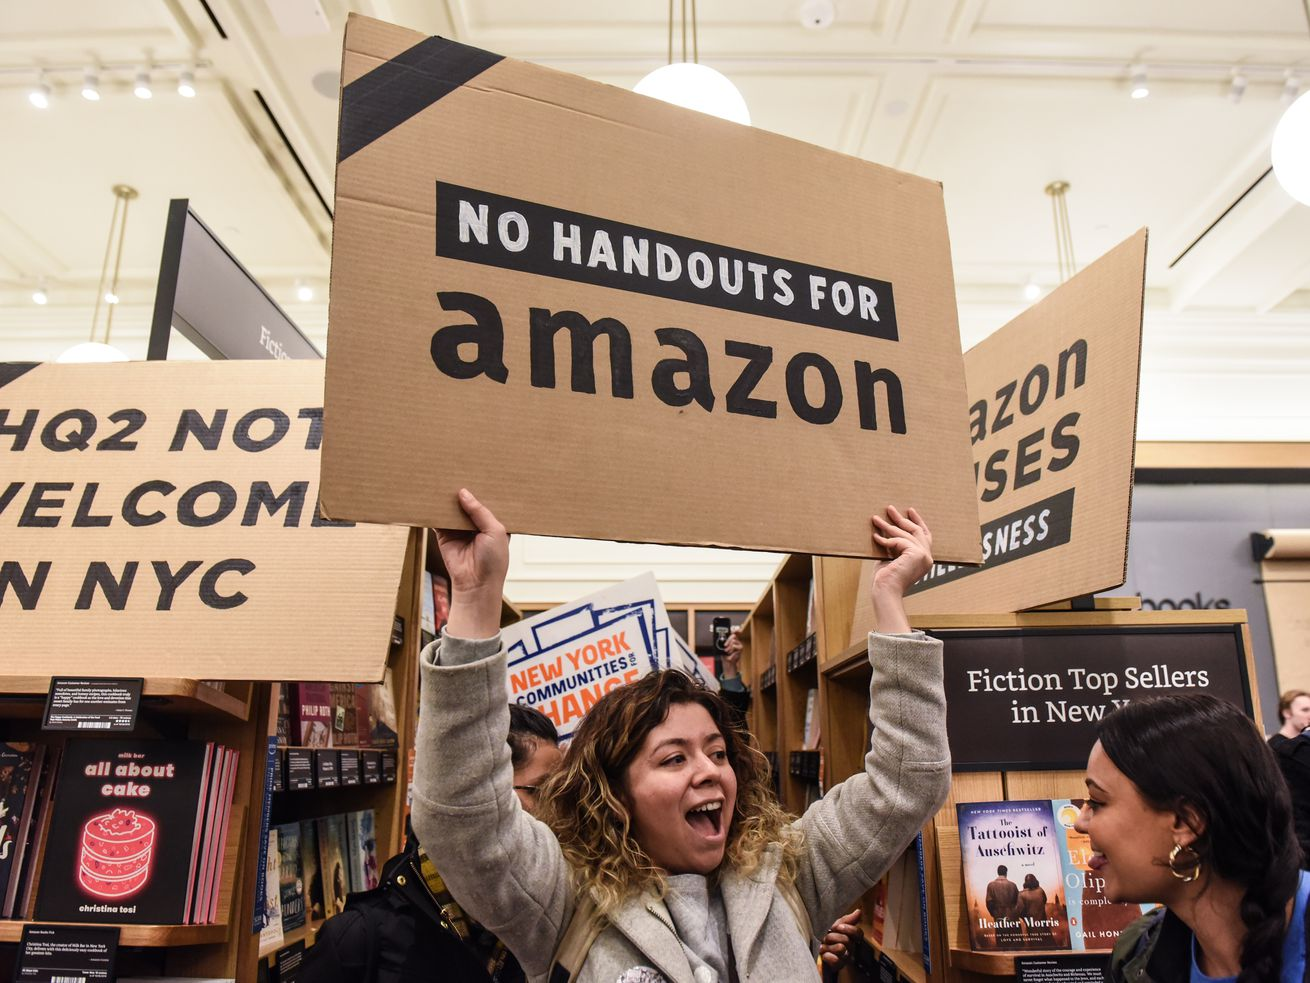 People opposed to Amazon's plan to build a second headquarters in New York hold a protest inside of an Amazon book store in Manhattan on November 26, 2018. Amazon has since scrapped its plan to build a Queens campus.